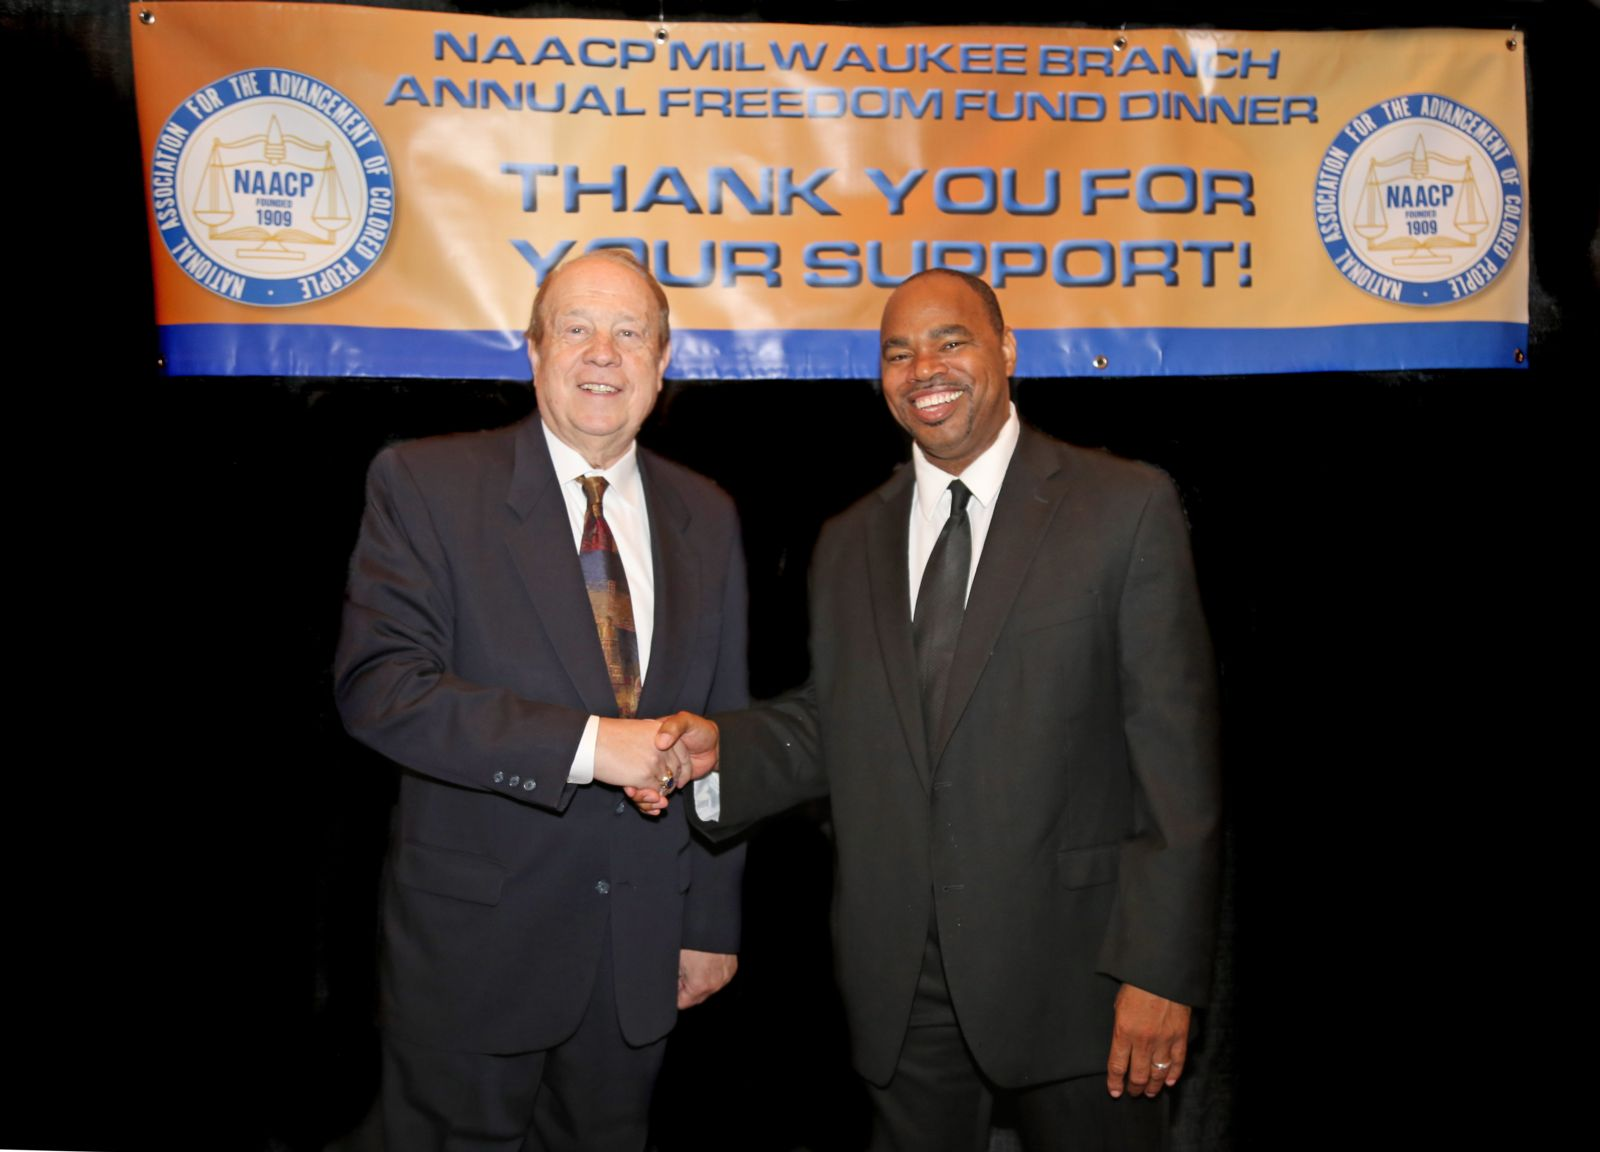 Attorney Michael Hupy at NAACP Freedom Fund Dinner